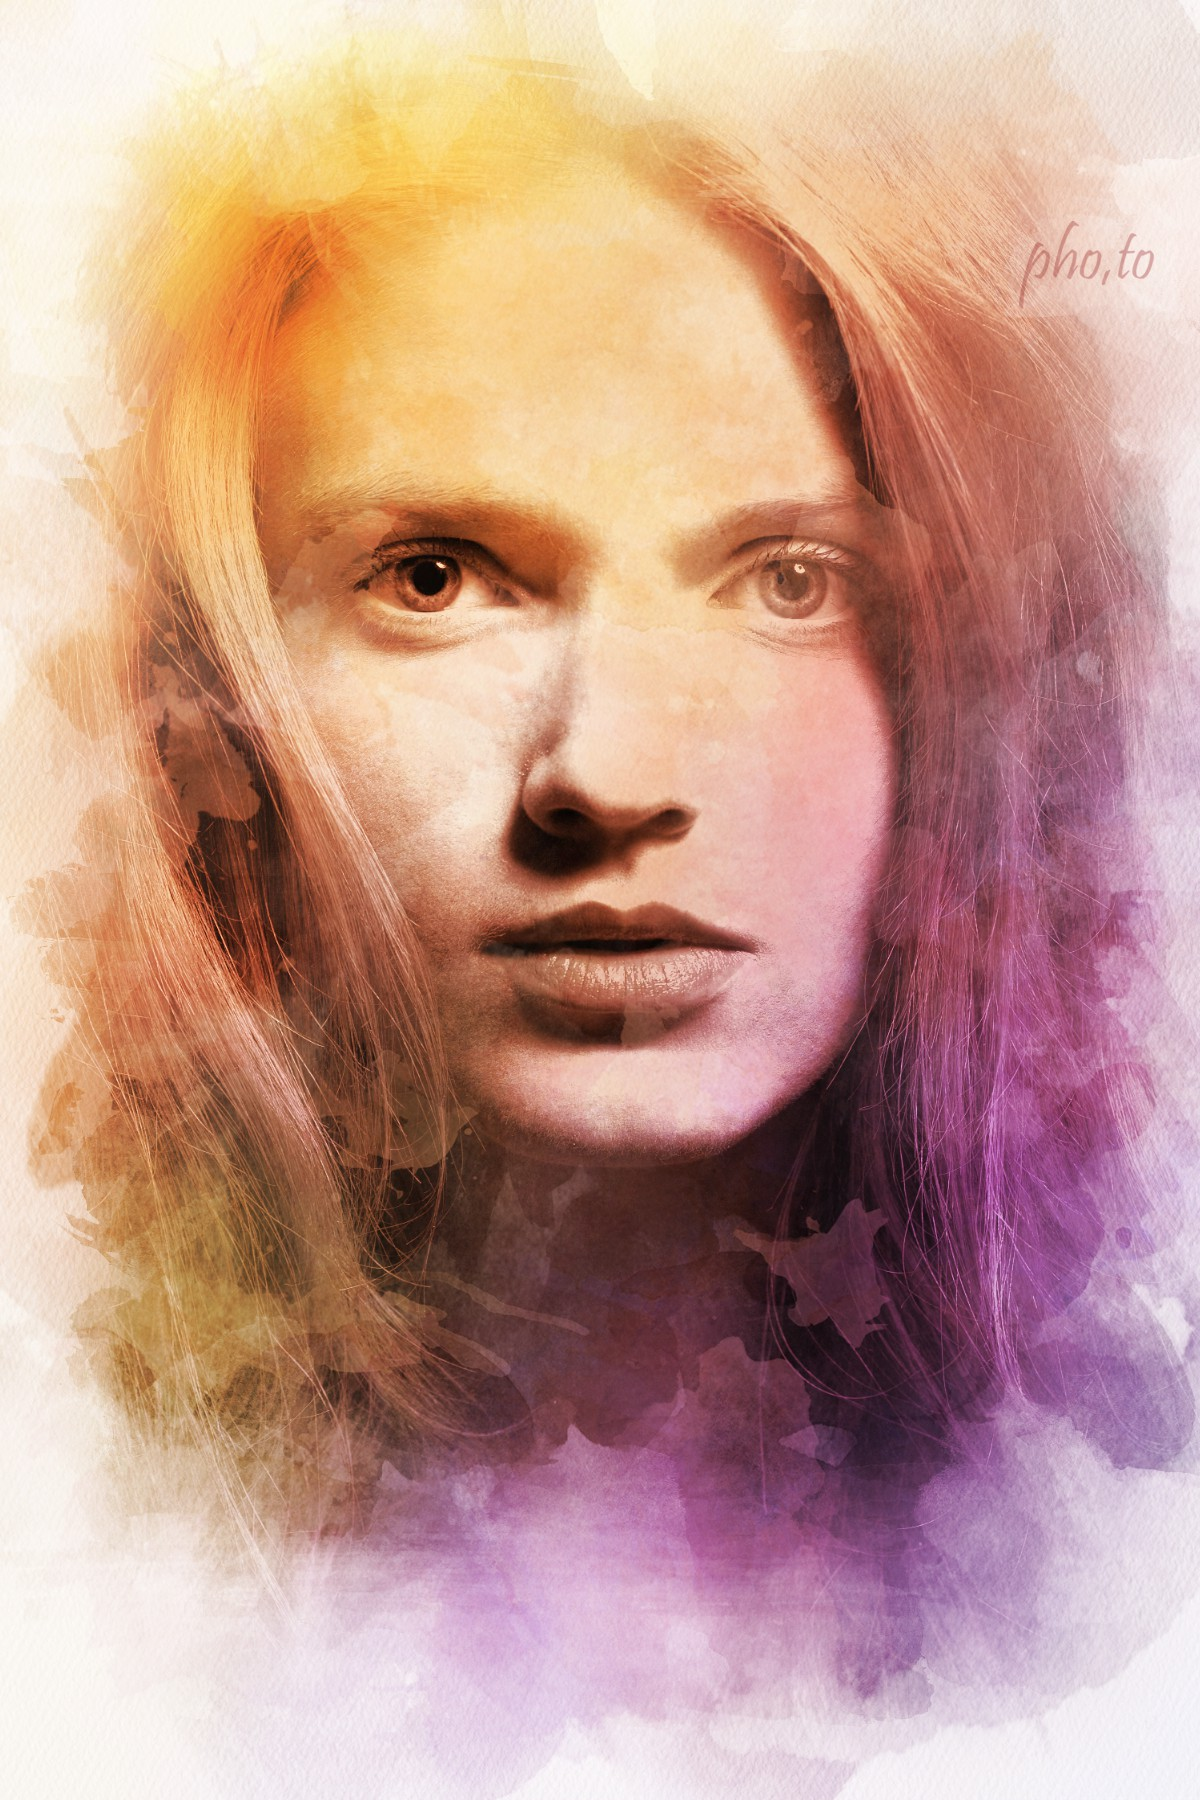 A portrait of a beautiful girl in warm colors made with the help of a watercolor filter.